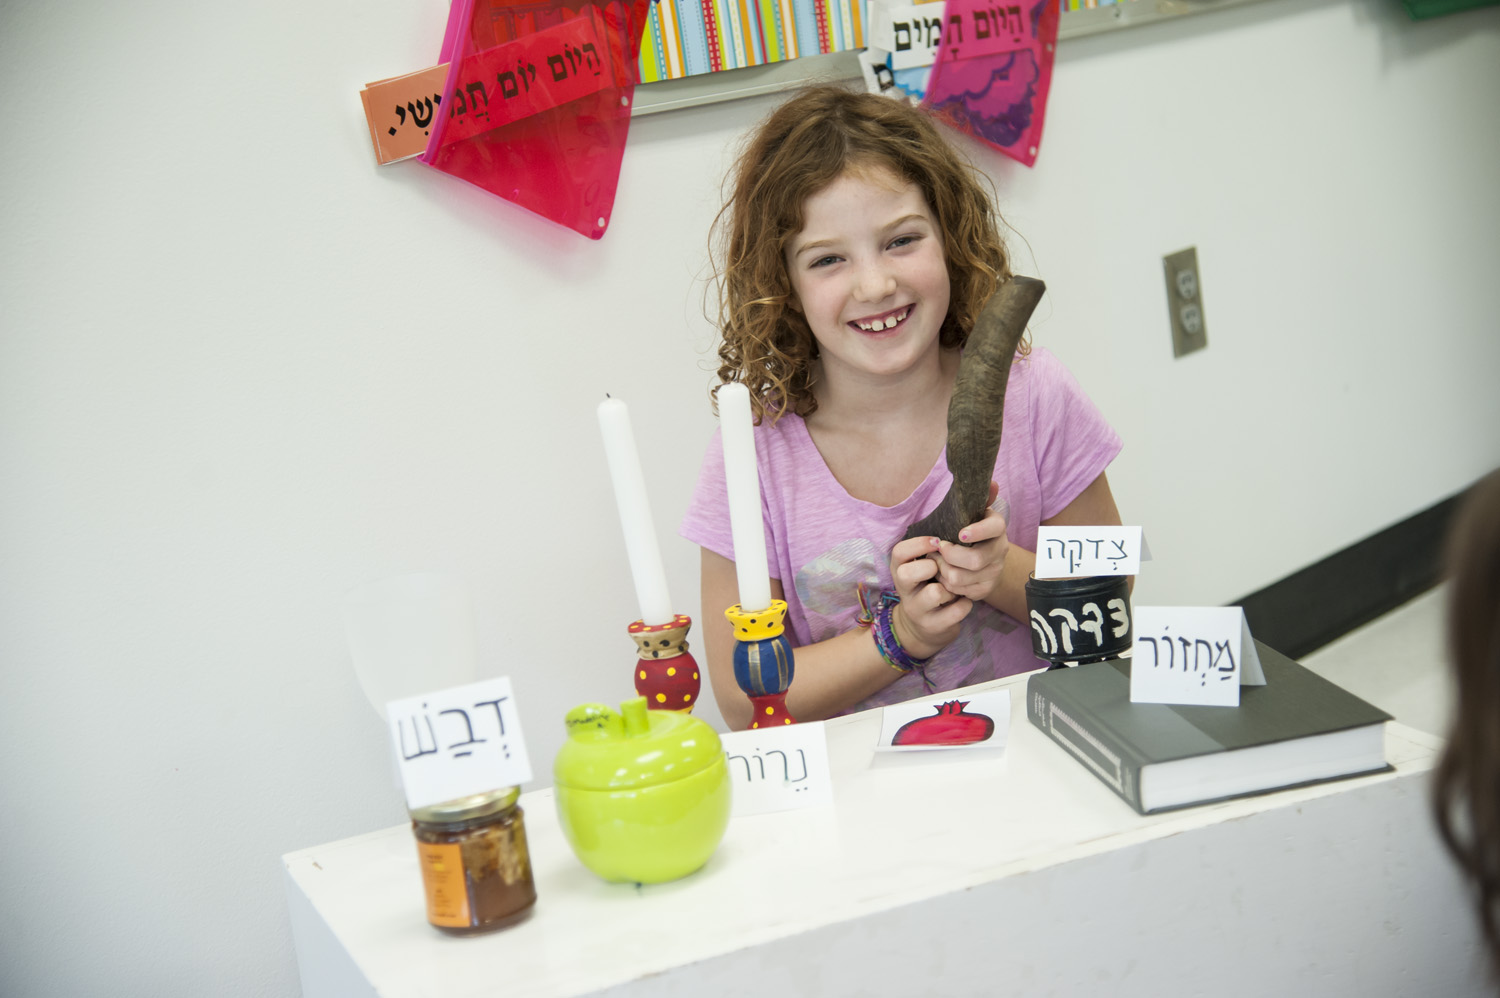 Student with ritual objects associated with Rosh Hashana